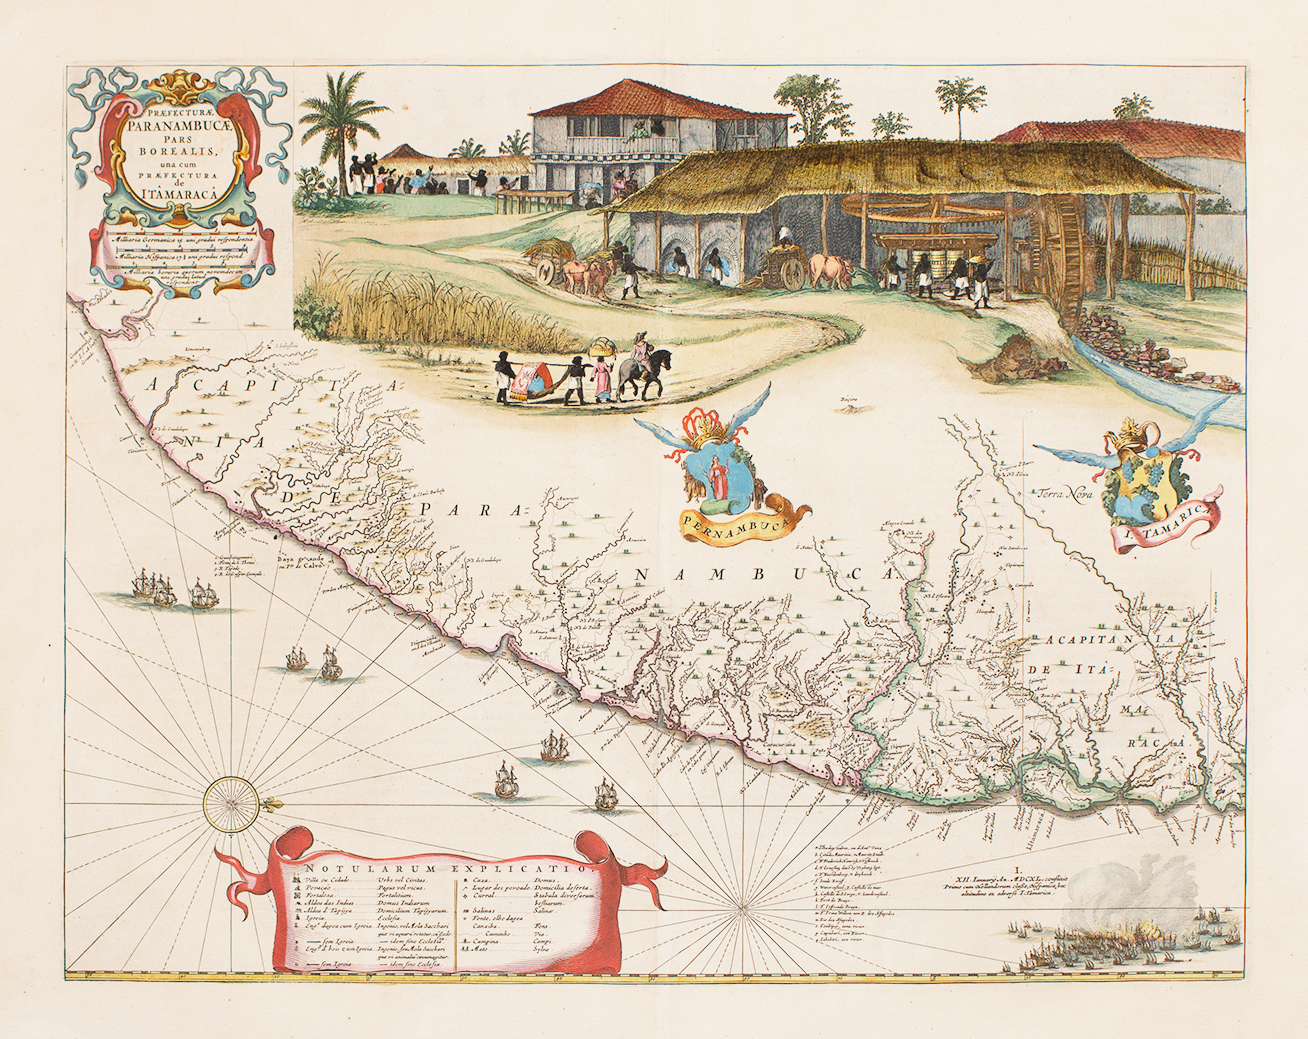 Image of a map that features a Dutch colony with enslaved people working on a highly automated (mechanical) sugar plantation. The land, its products, and people were considered Dutch property.